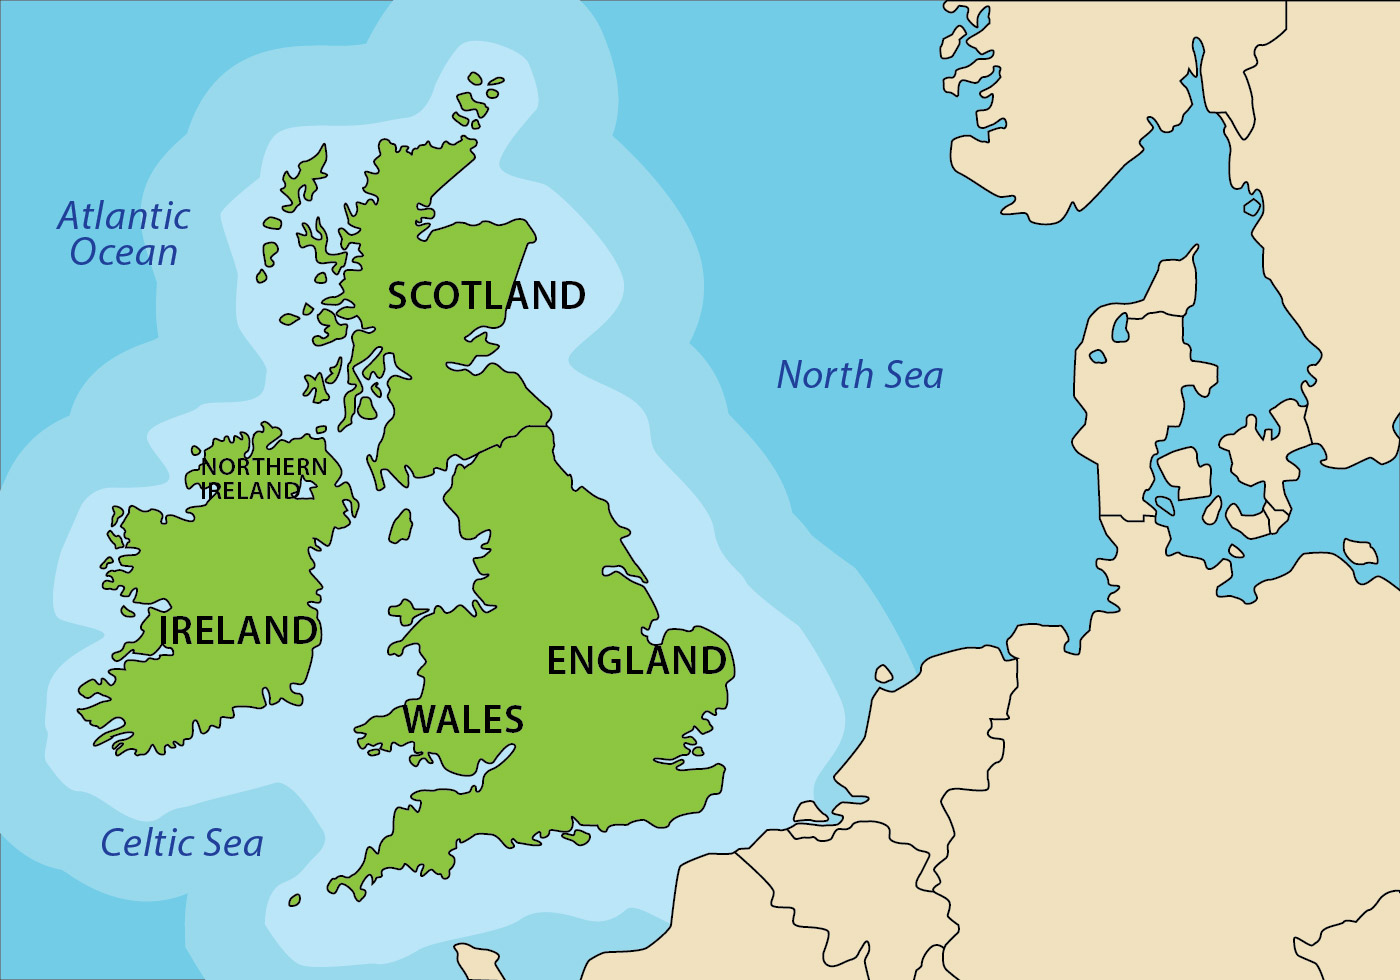 The British Isles Map British Isles Map   Download Free Vector Art, Stock Graphics & Images The British Isles Map